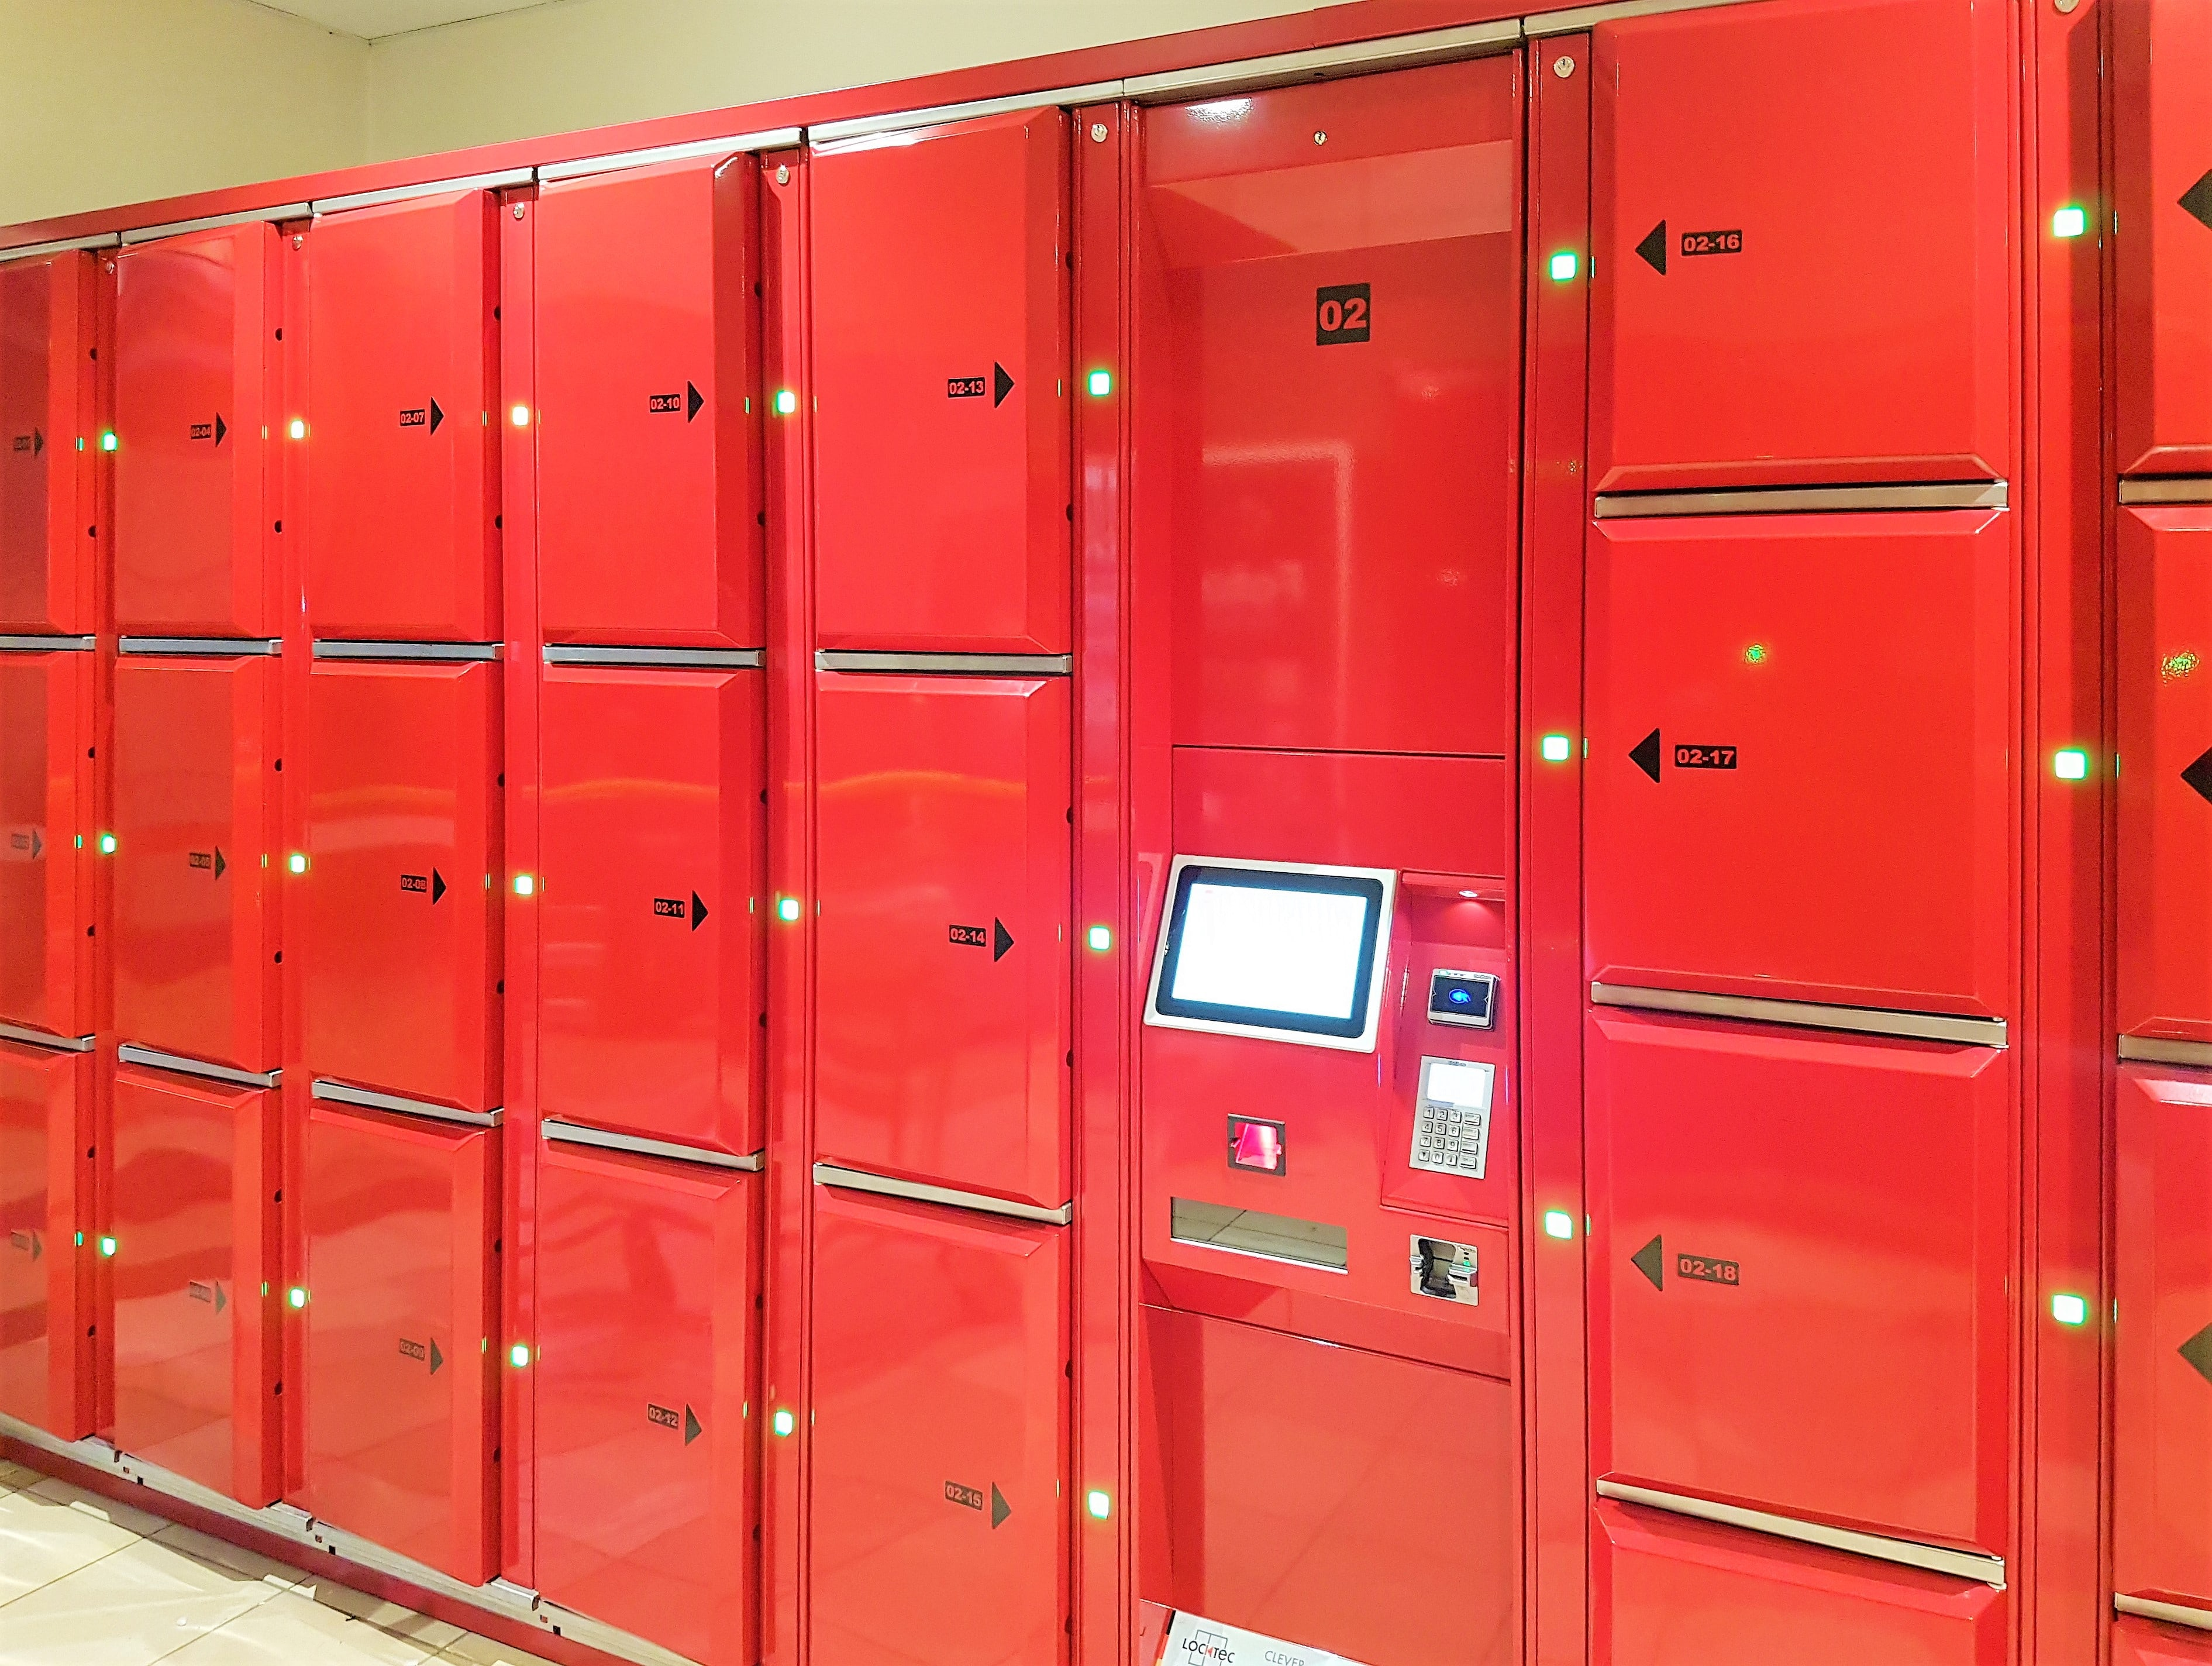 Smart locker system - Locksafe by LockTec. Electronic lockers for Danish railway. Luggage lockers Locksafe: Bags and suitcases can be stored in various locker compartment sizes. Ideal for train stations, airports and bus stations.